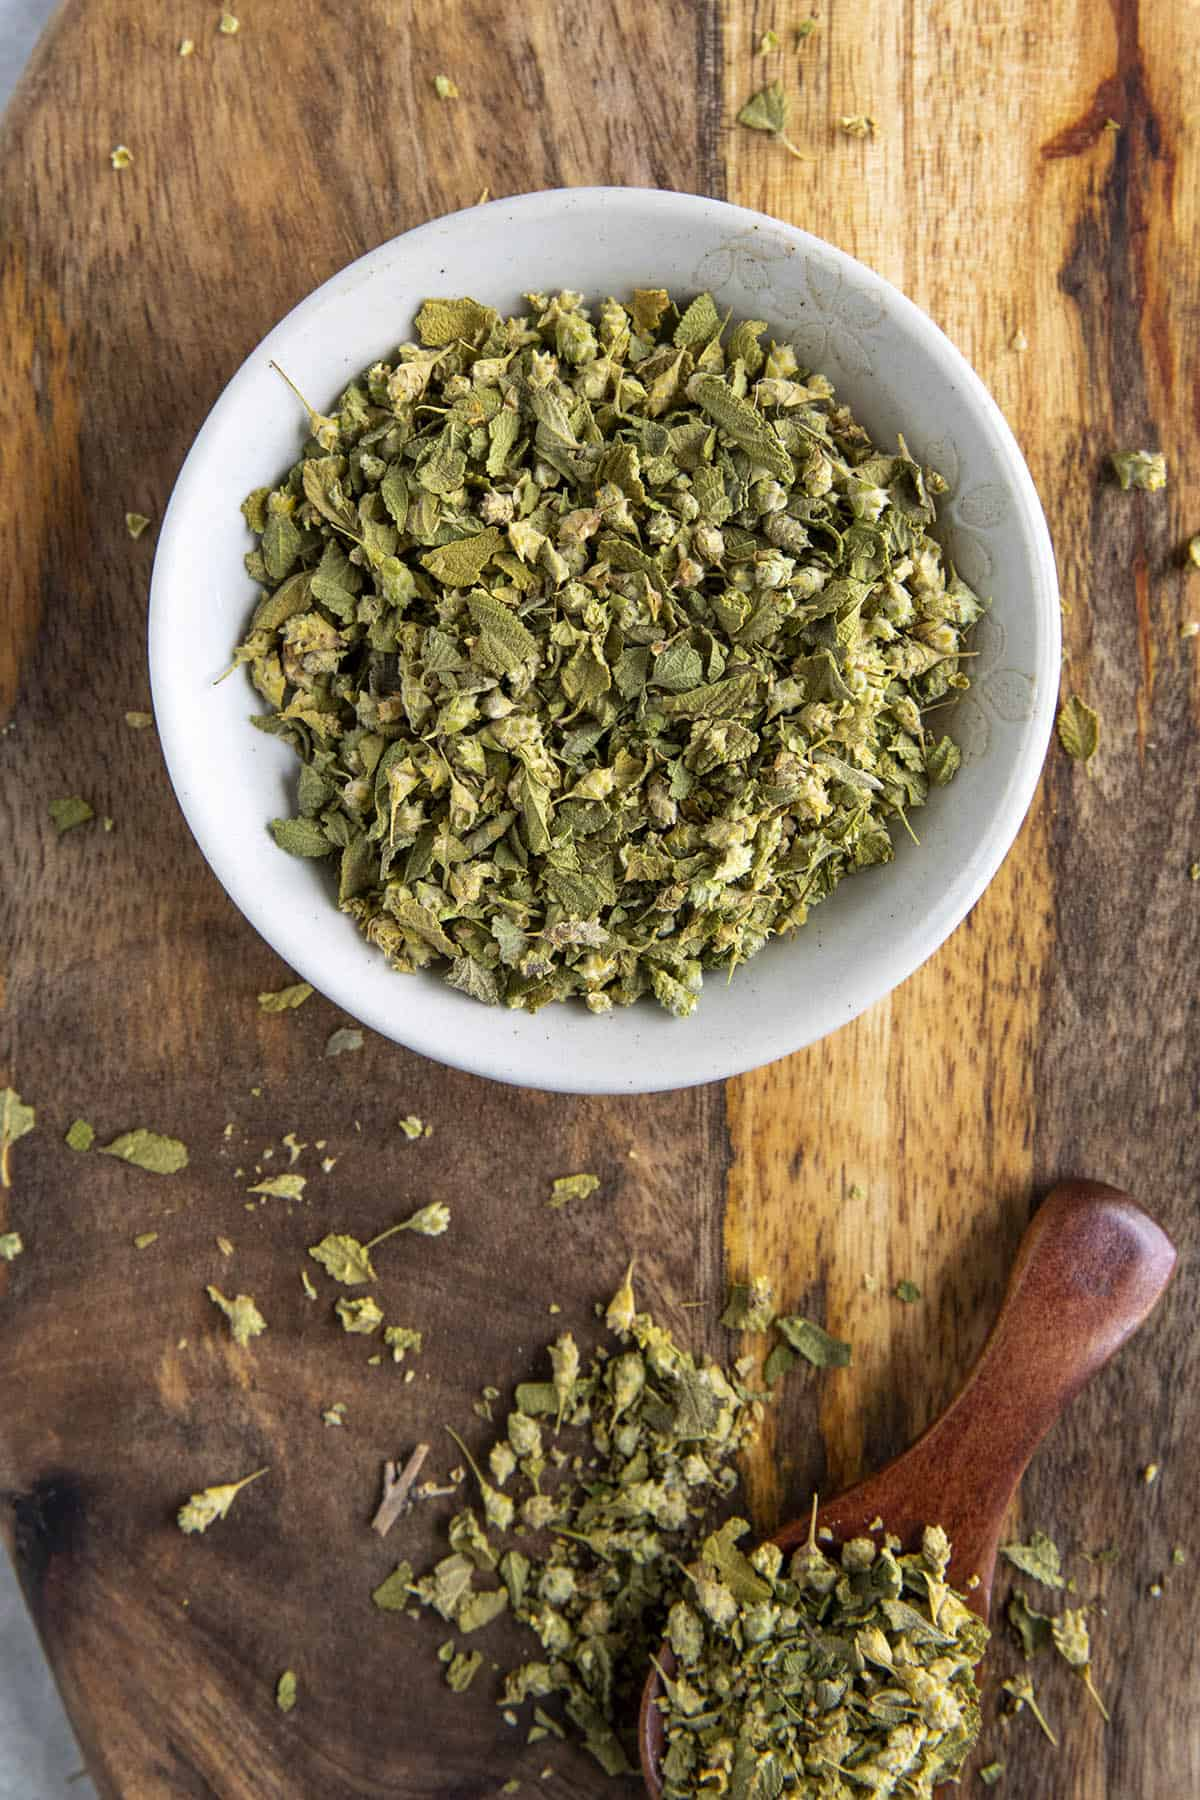 Mexican Oregano in a bowl, ready to use